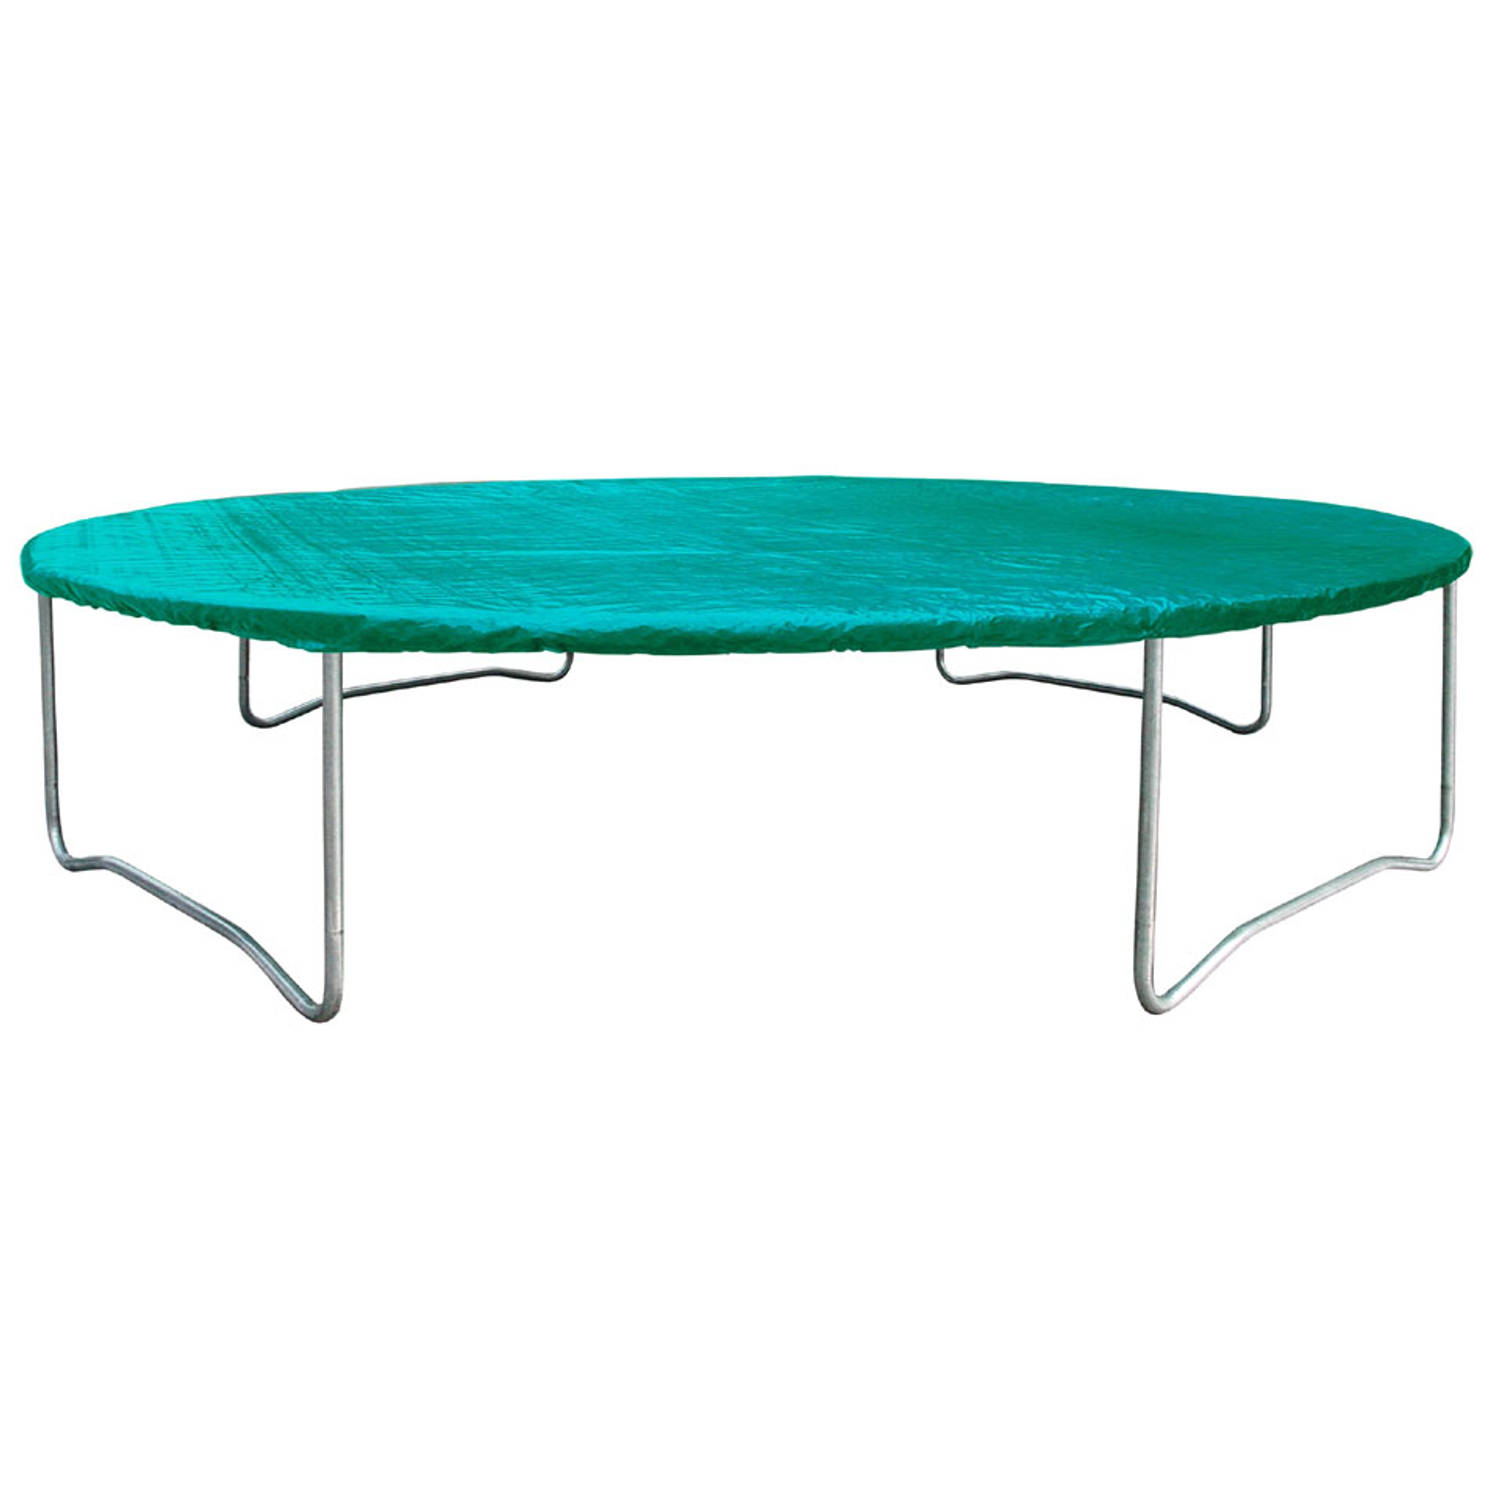 Game On Sport Trampolinehoes Rond - 423 Cm - Groen